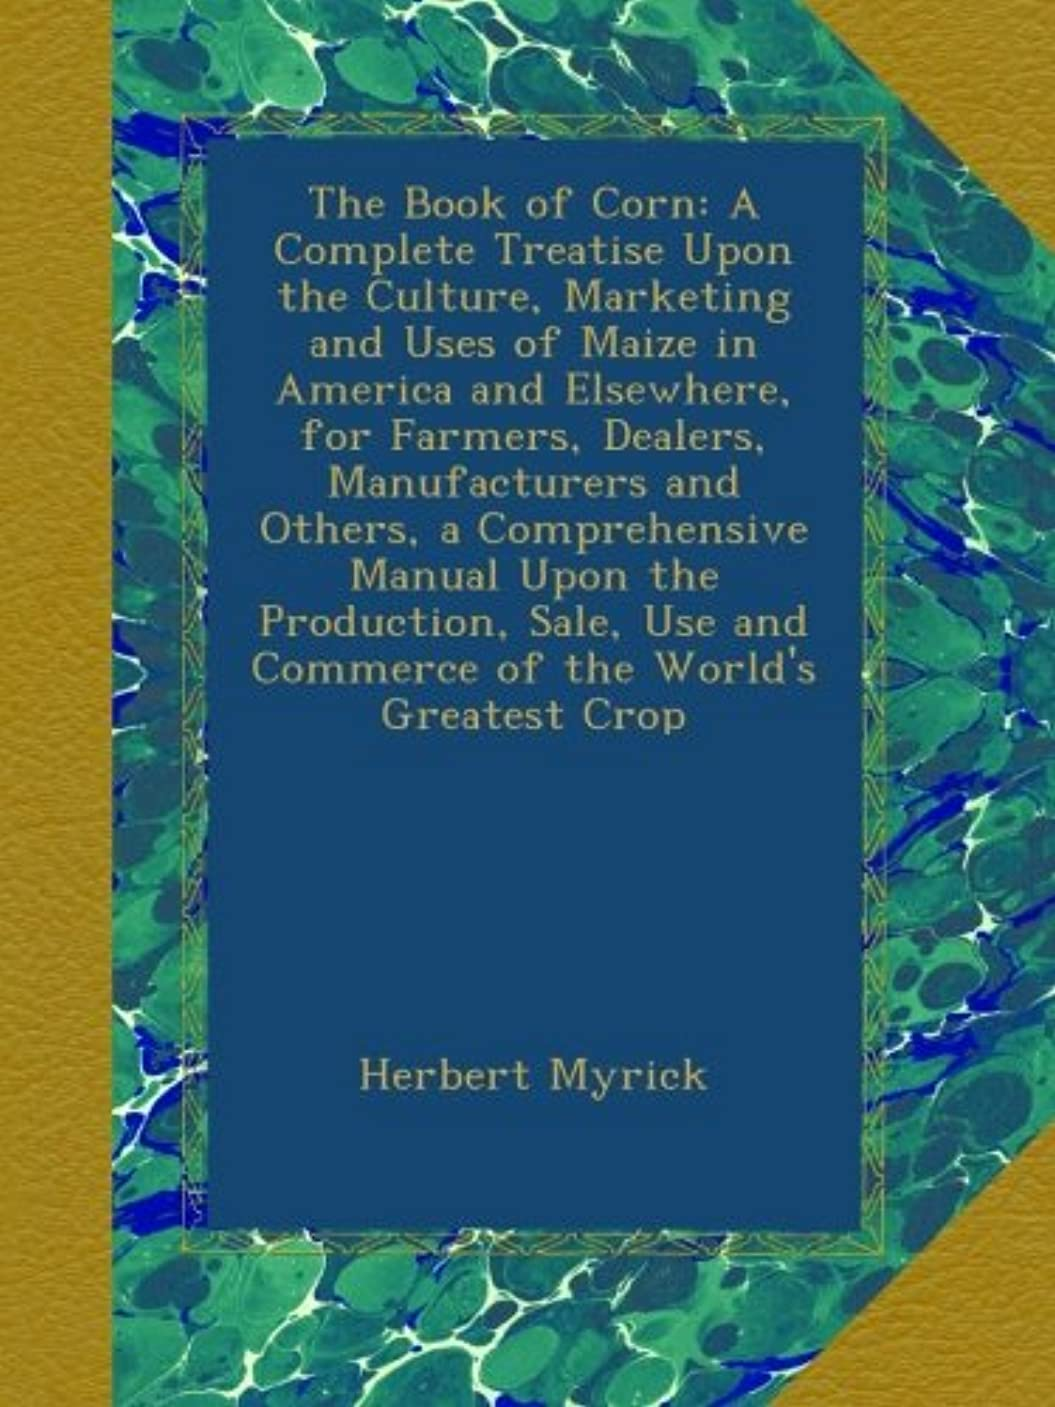 倒錯不愉快ネストThe Book of Corn: A Complete Treatise Upon the Culture, Marketing and Uses of Maize in America and Elsewhere, for Farmers, Dealers, Manufacturers and Others, a Comprehensive Manual Upon the Production, Sale, Use and Commerce of the World's Greatest Crop